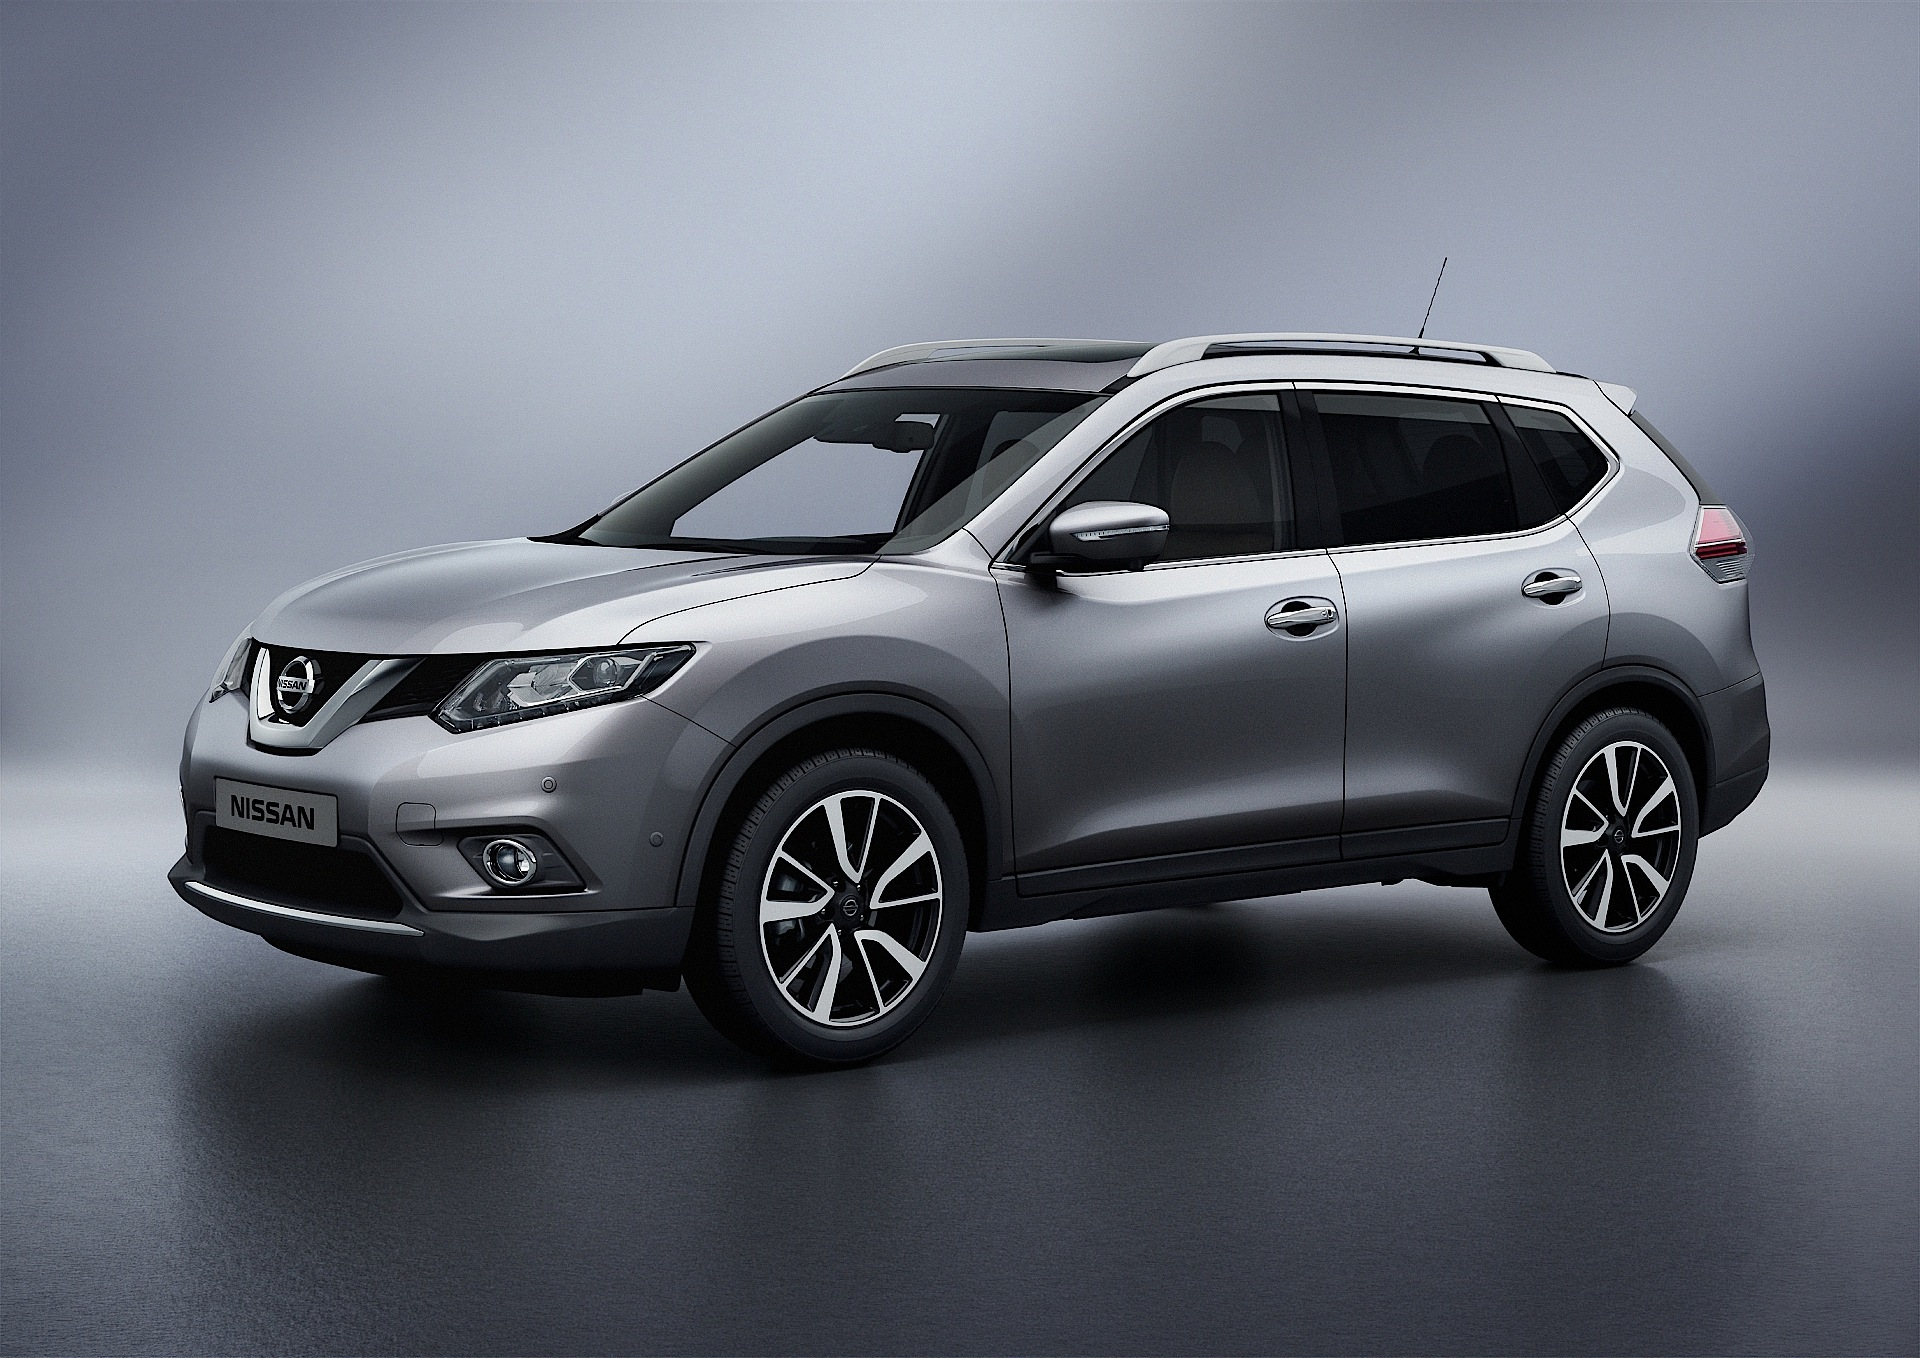 nissan x trail specs photos 2014 2015 2016 2017 autoevolution. Black Bedroom Furniture Sets. Home Design Ideas